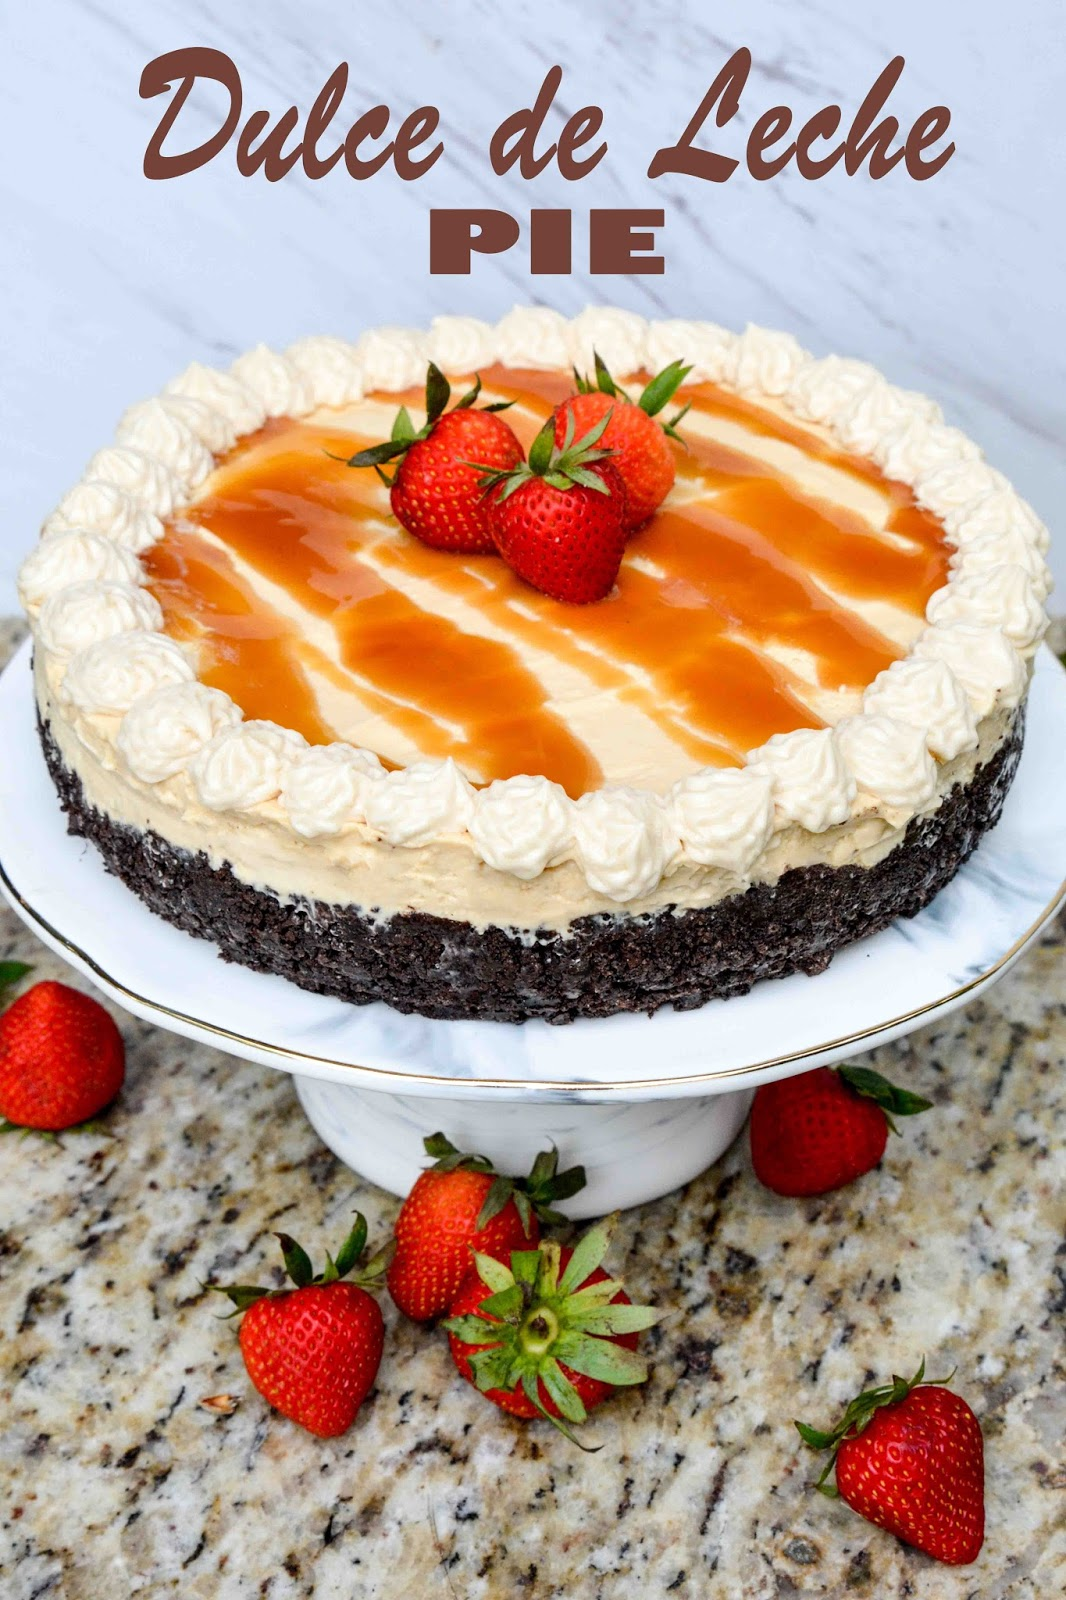 No Bake Dulce de Leche Pie